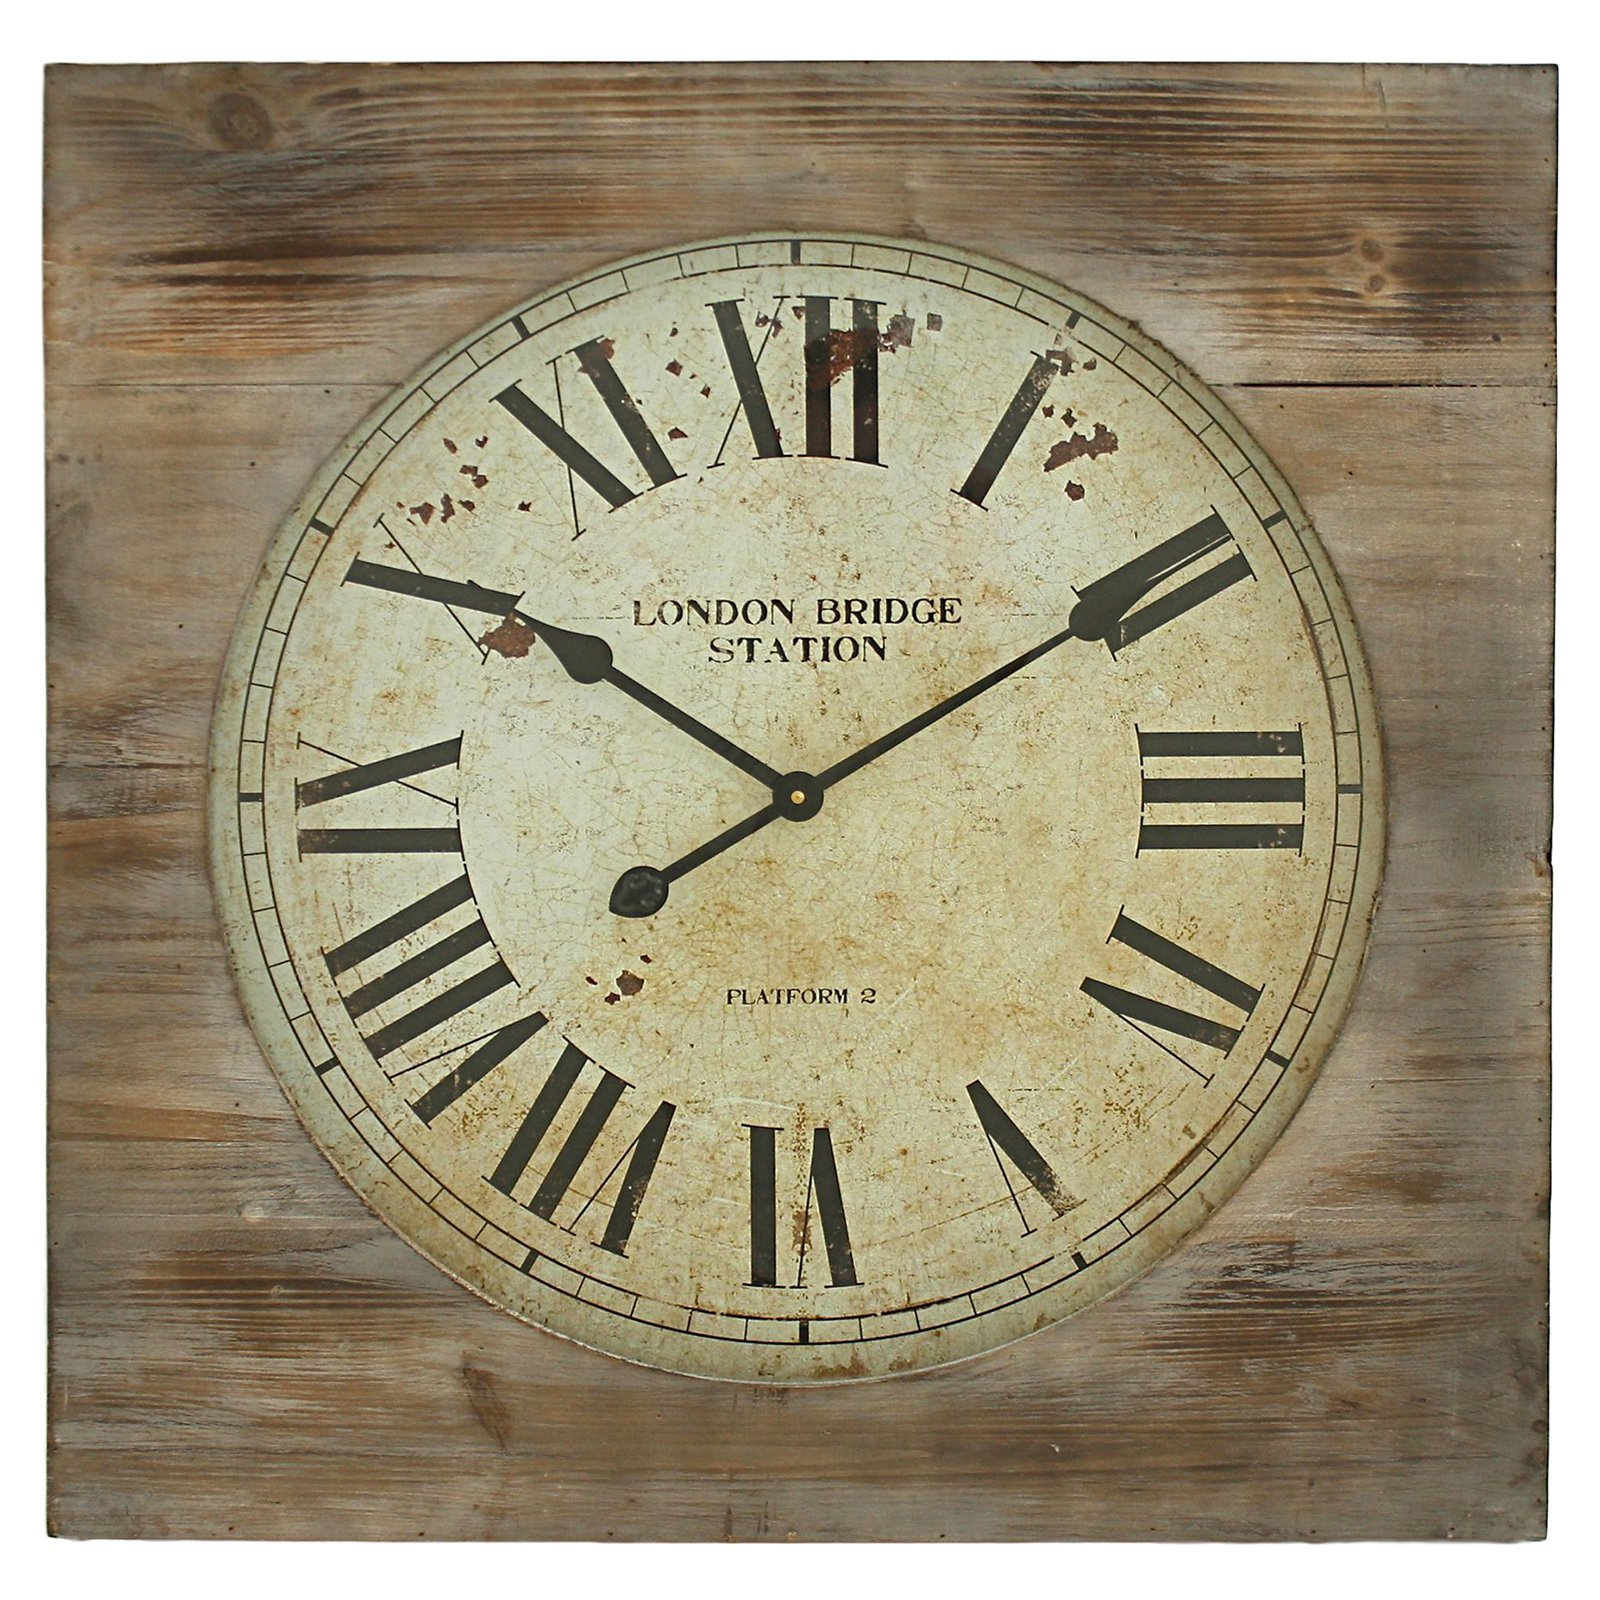 Aspire home accents london bridge station square wall clock aspire home accents london bridge station square wall clock walmart amipublicfo Image collections